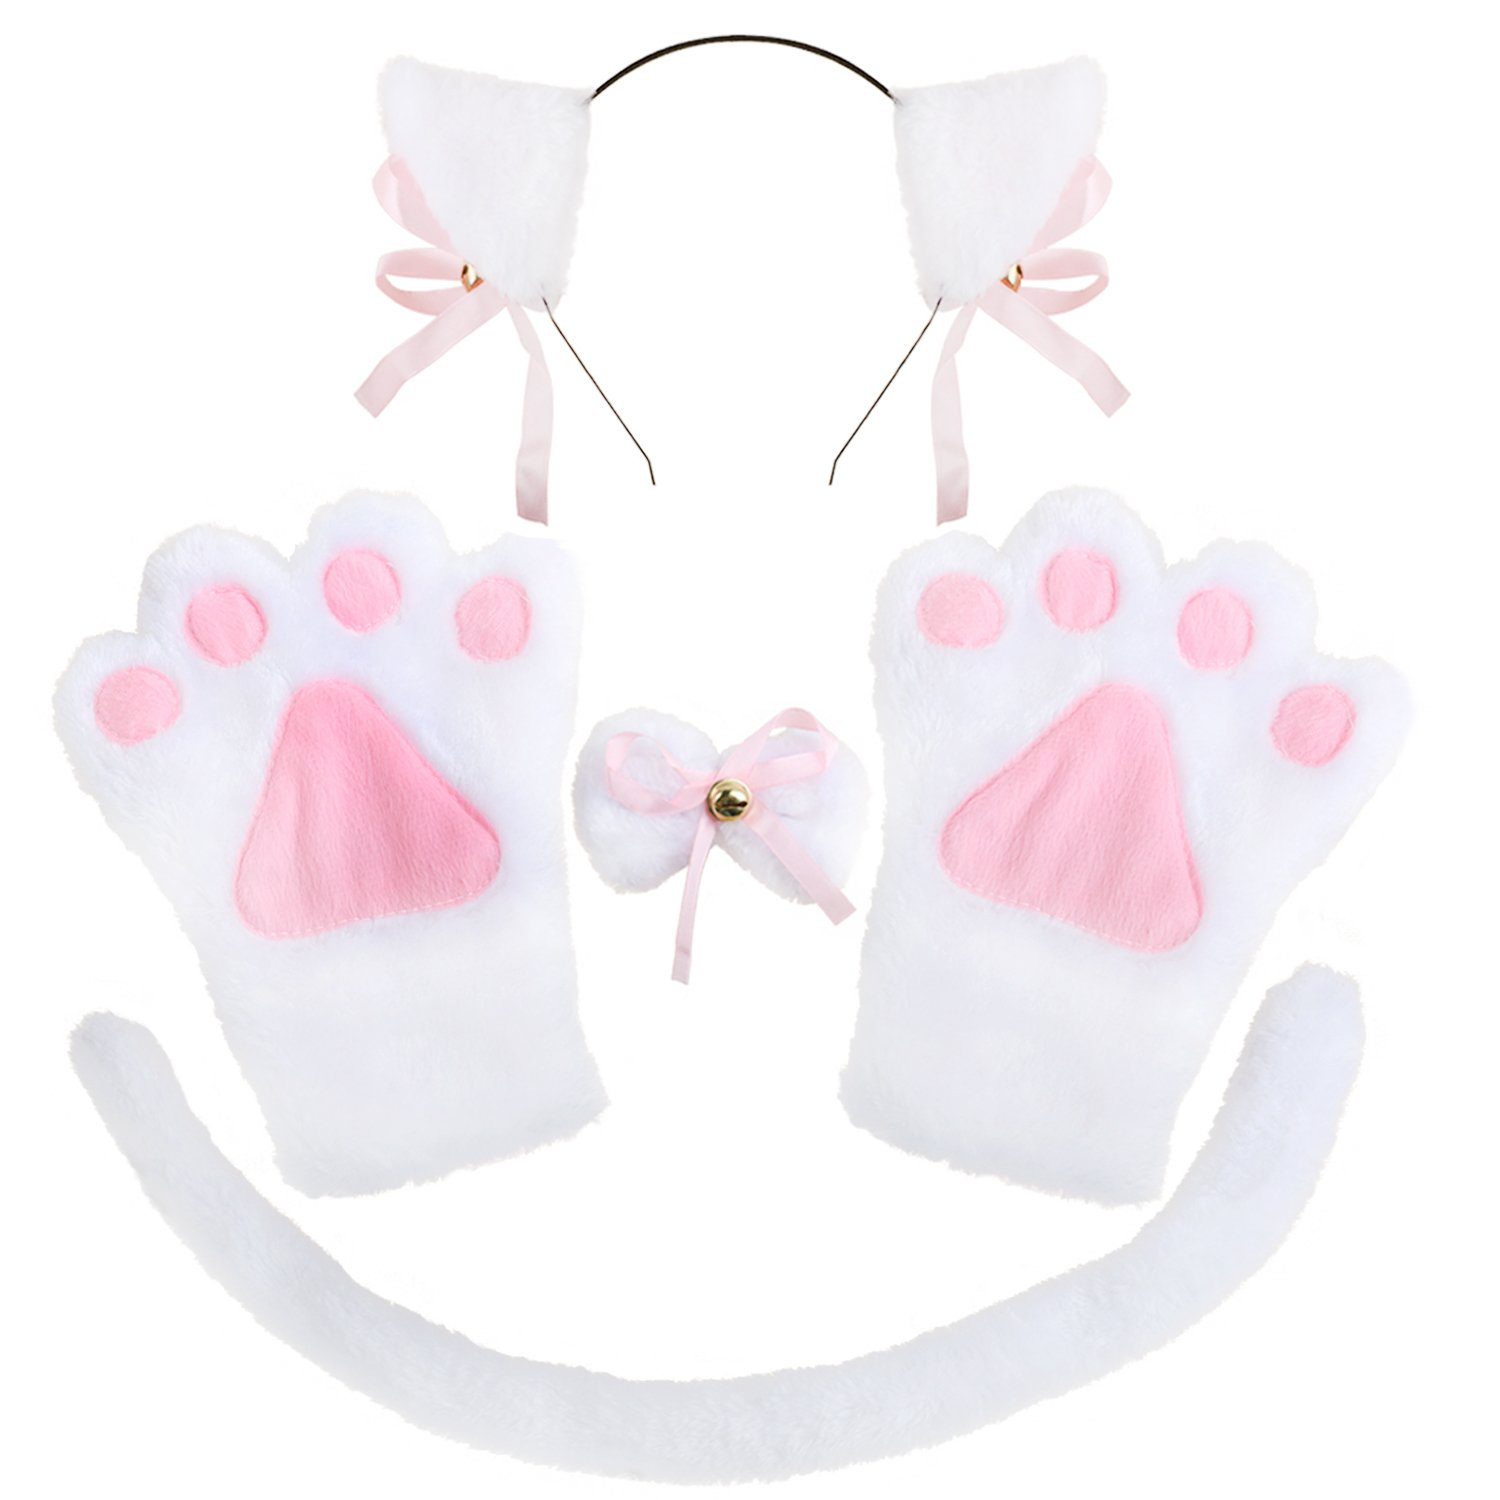 Hip Mall Kitty Cat Cosplay Anime Fancy Costume Lolita Paw Ear Bow Tie Set T1000013